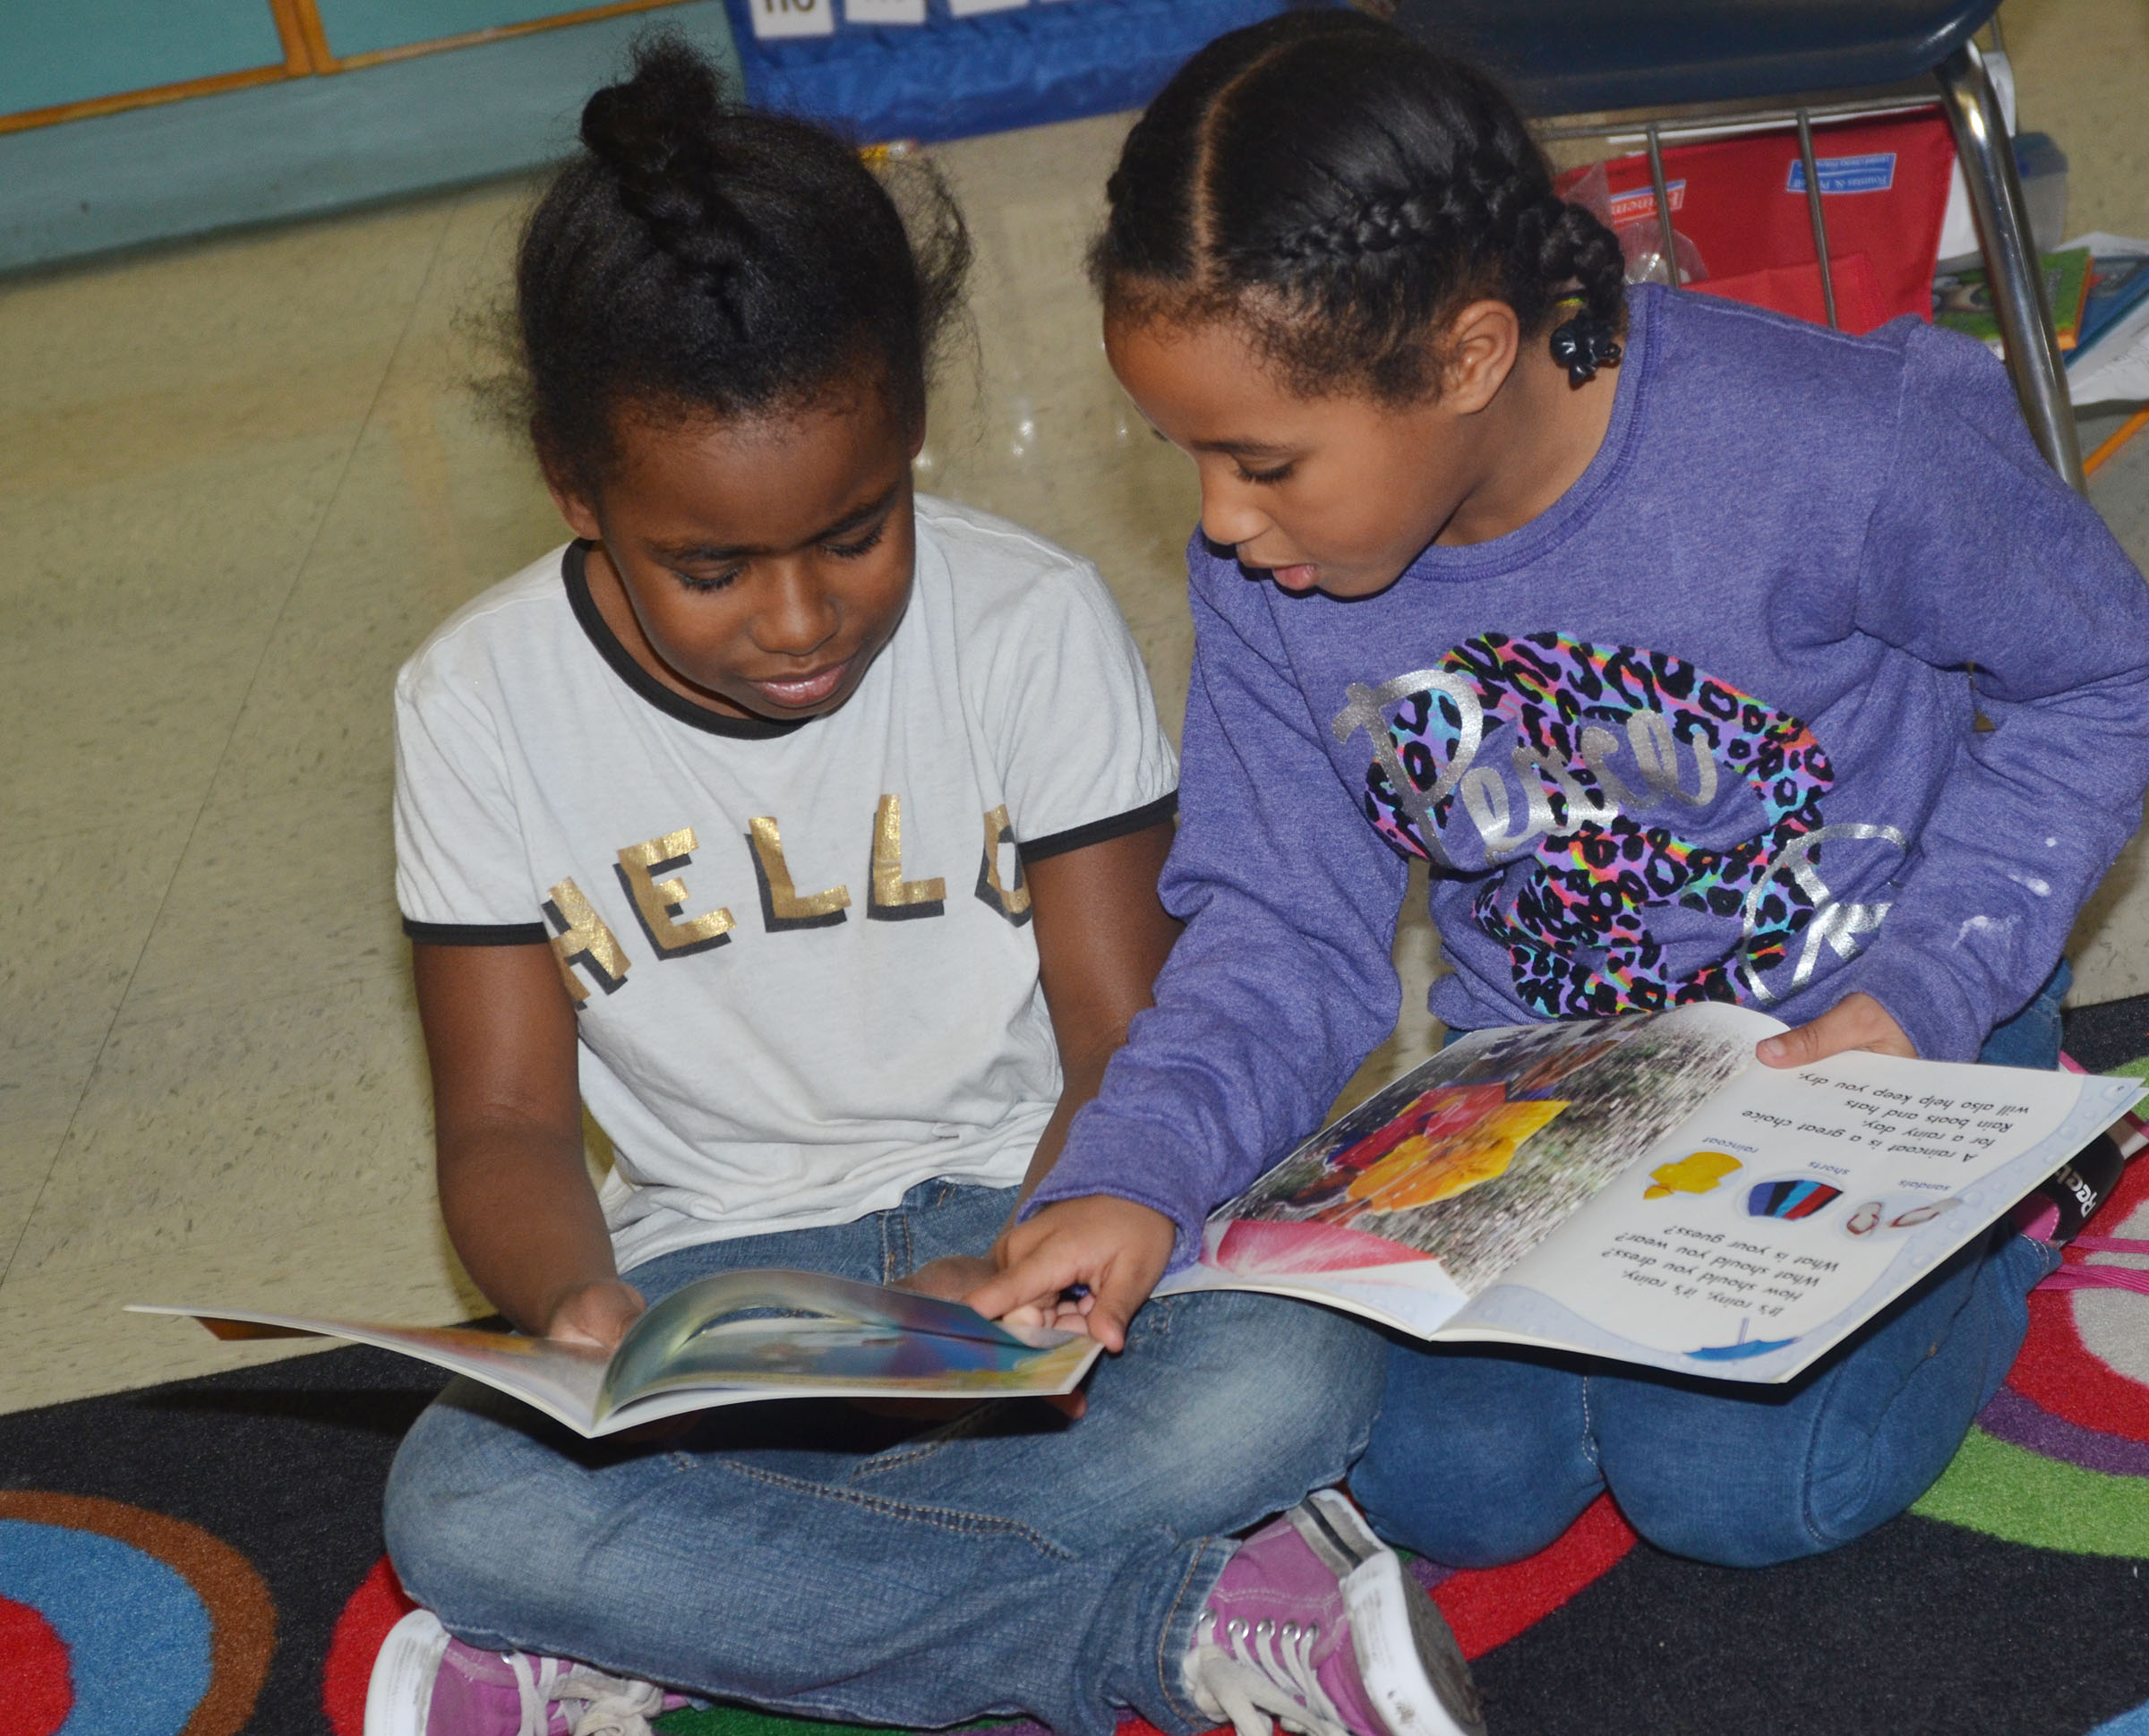 CES first-graders Destini Gholston, at left, and Kadance Ford read together.